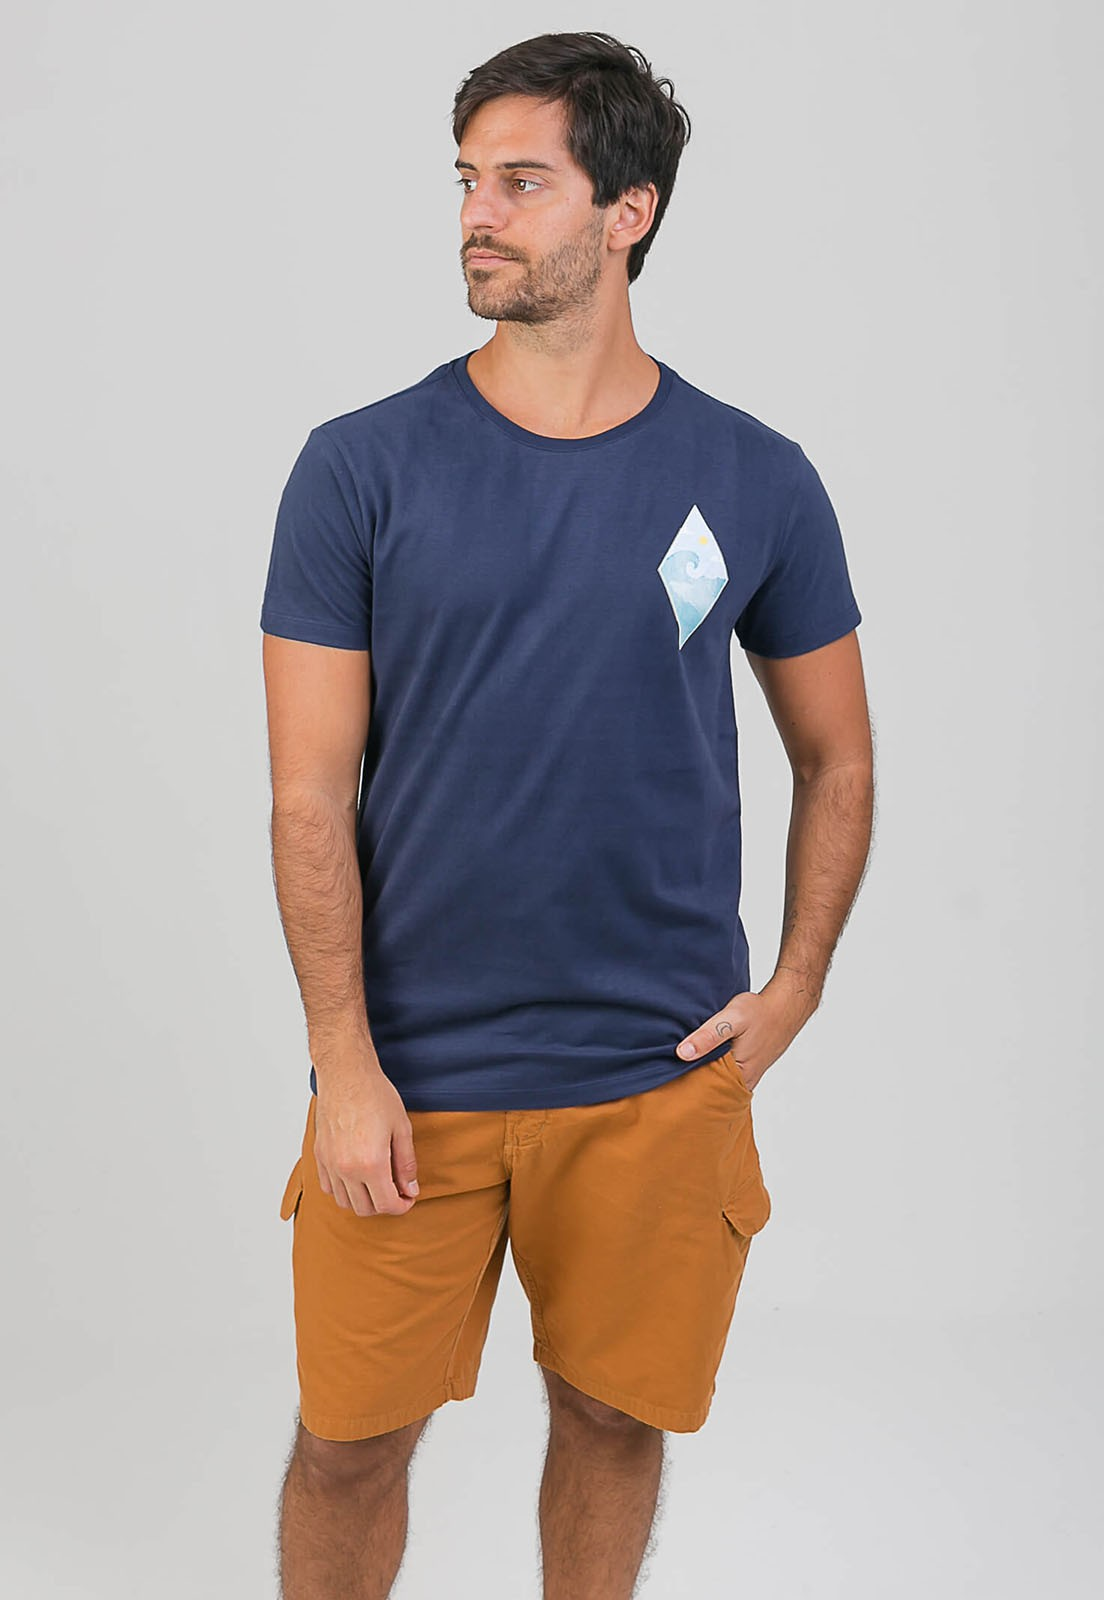 T-shirt Diamond Wave melty  - melty surf & Co.